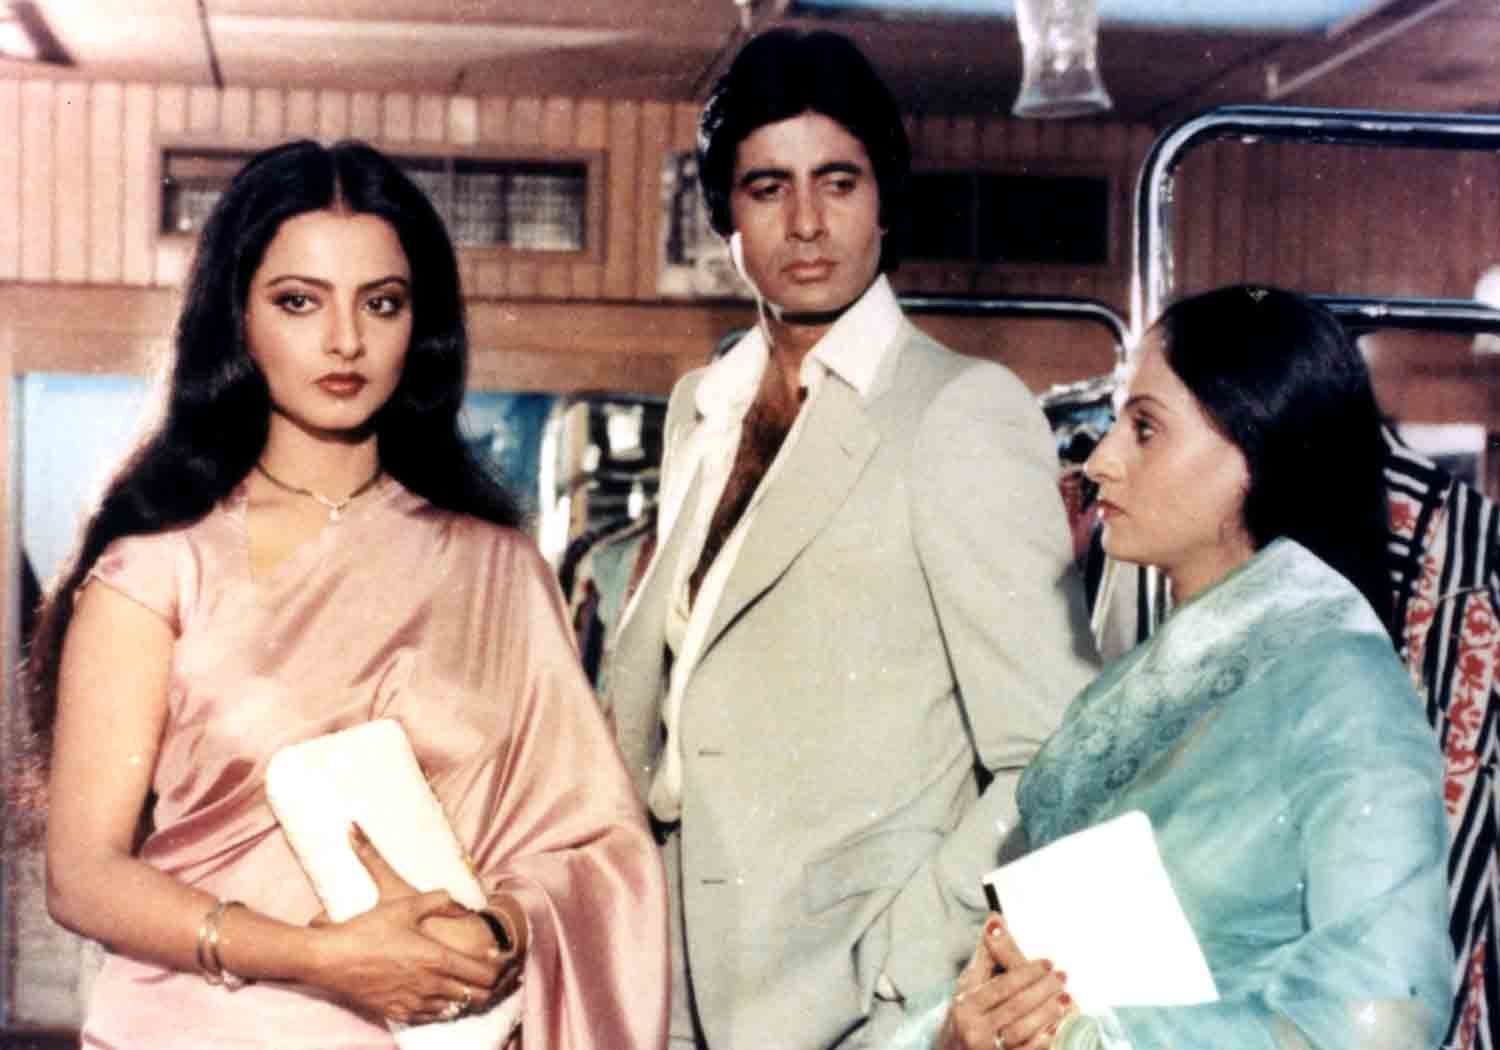 Showcasing a love triangle boldly, Silsila was a movie ahead of its time. - Photo courtesy: rajasen.com